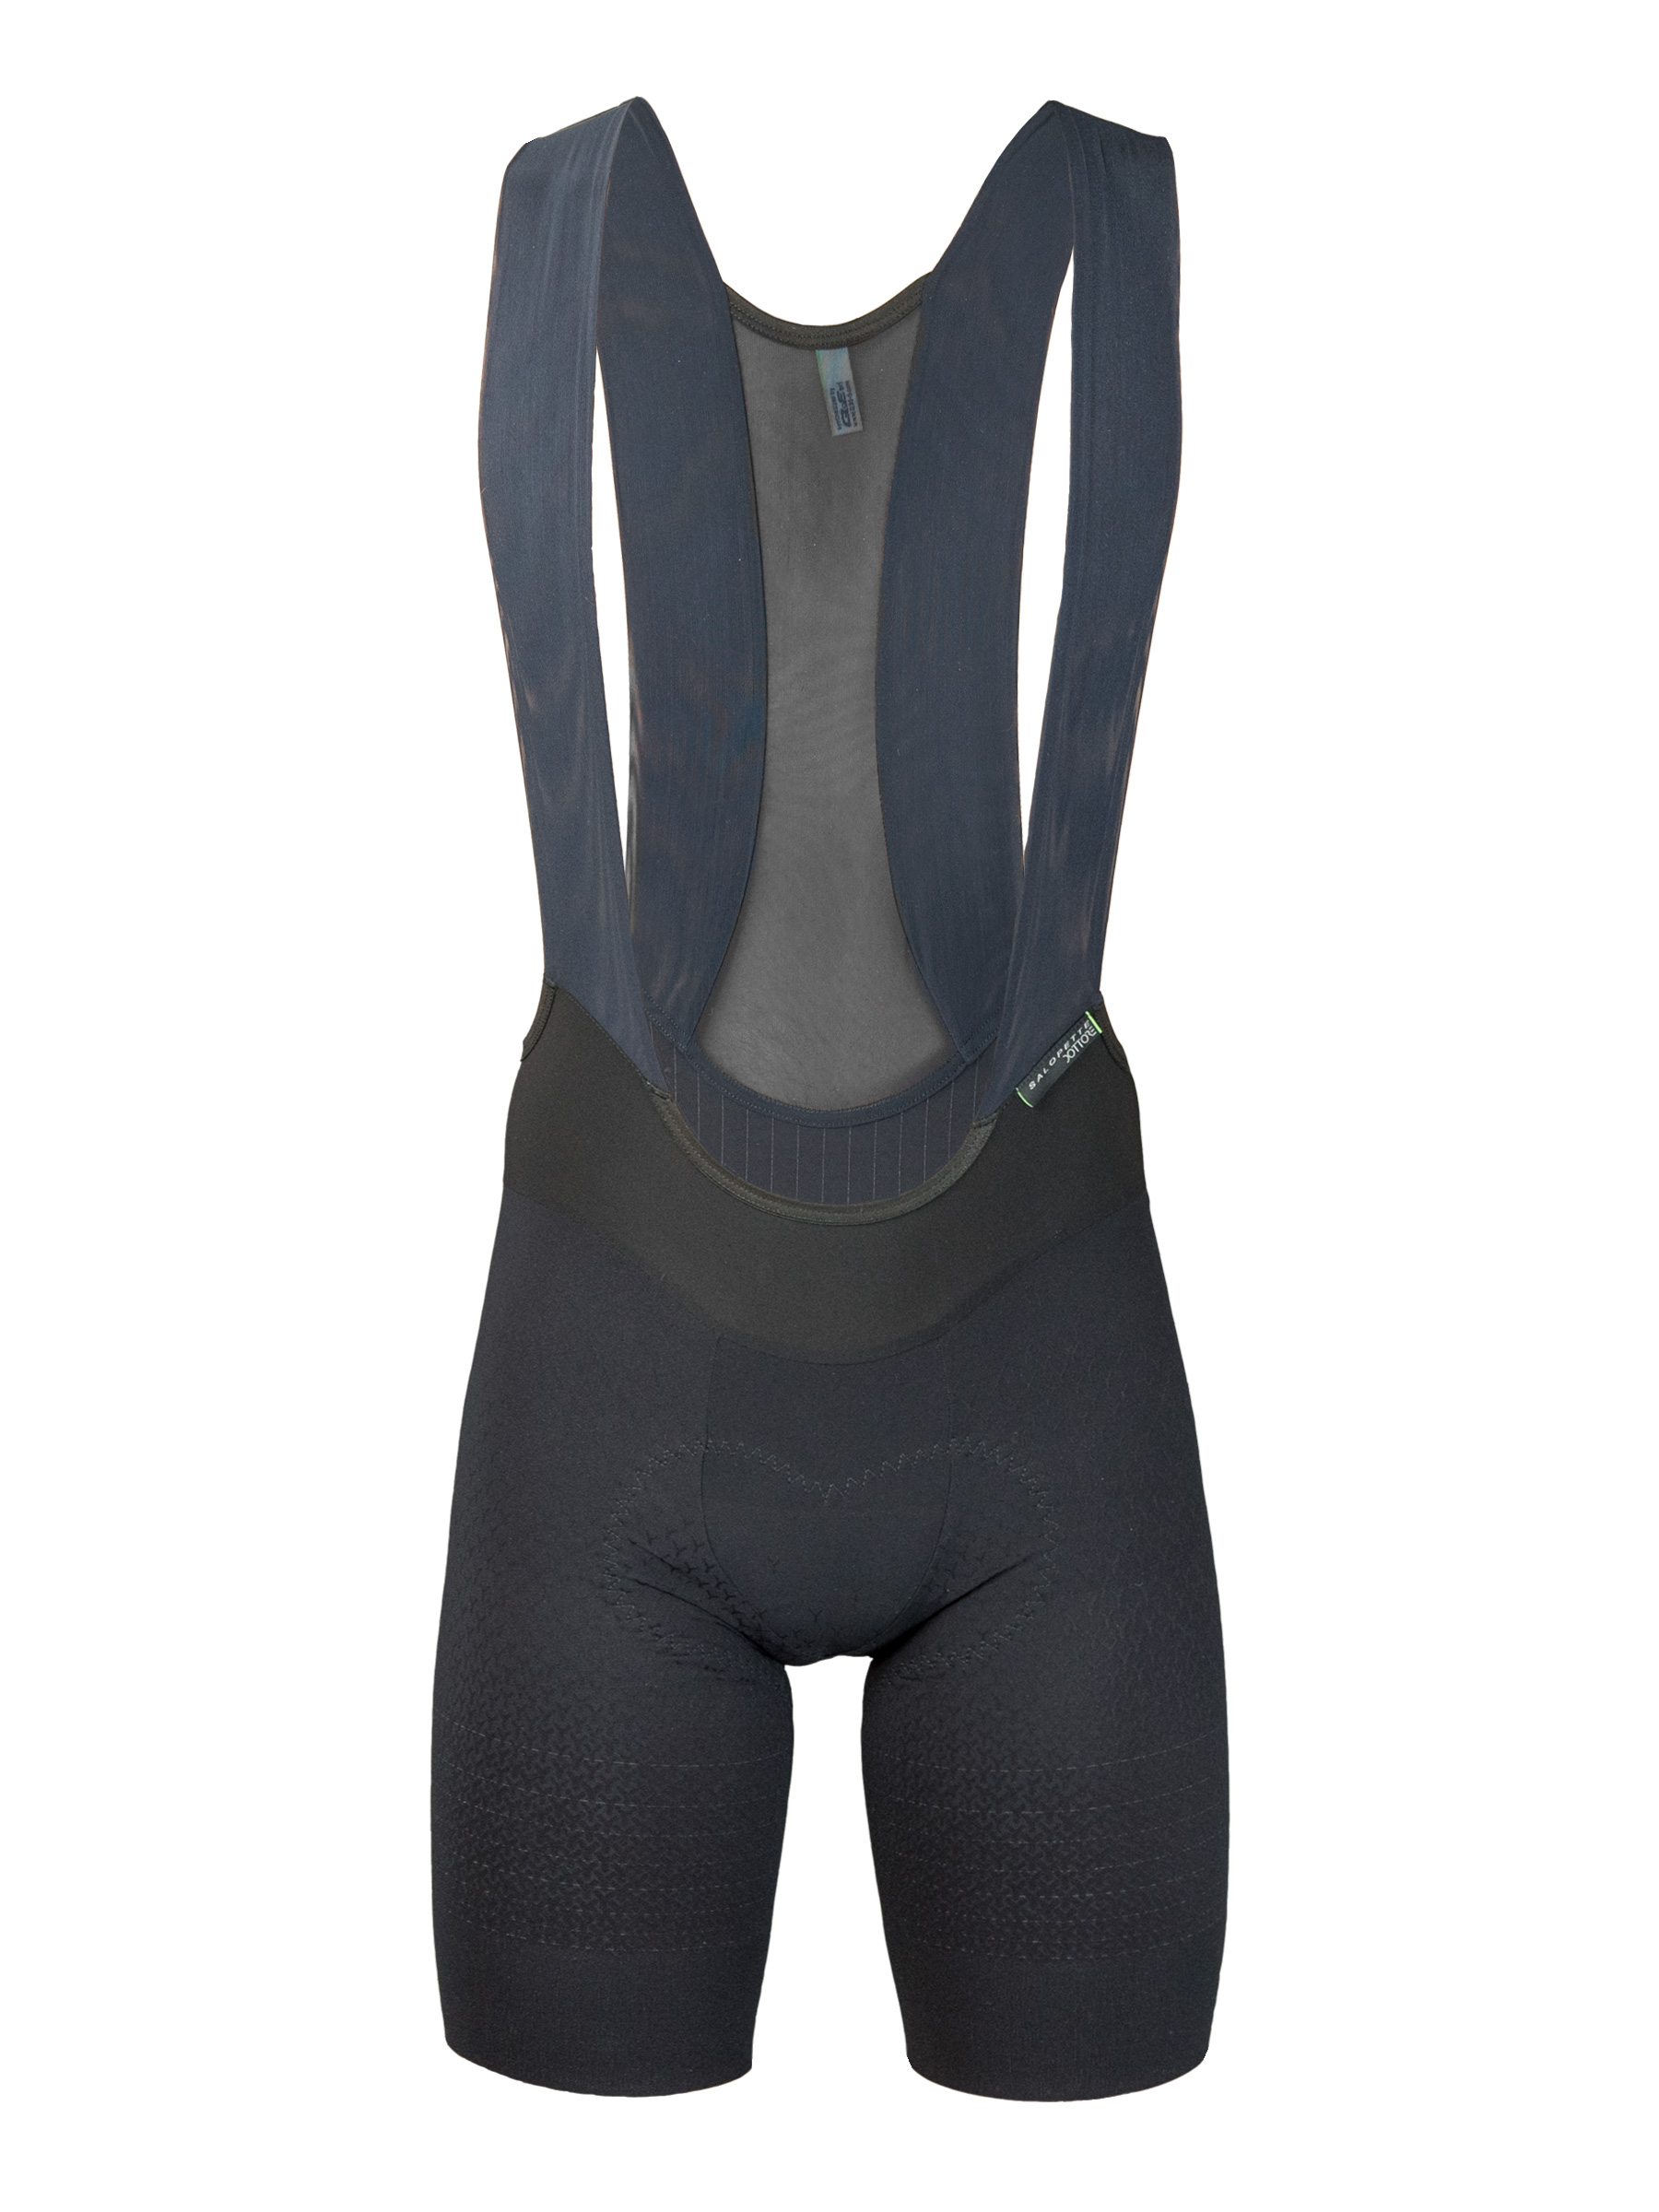 mens cycling bib shorts Dottore L1 black